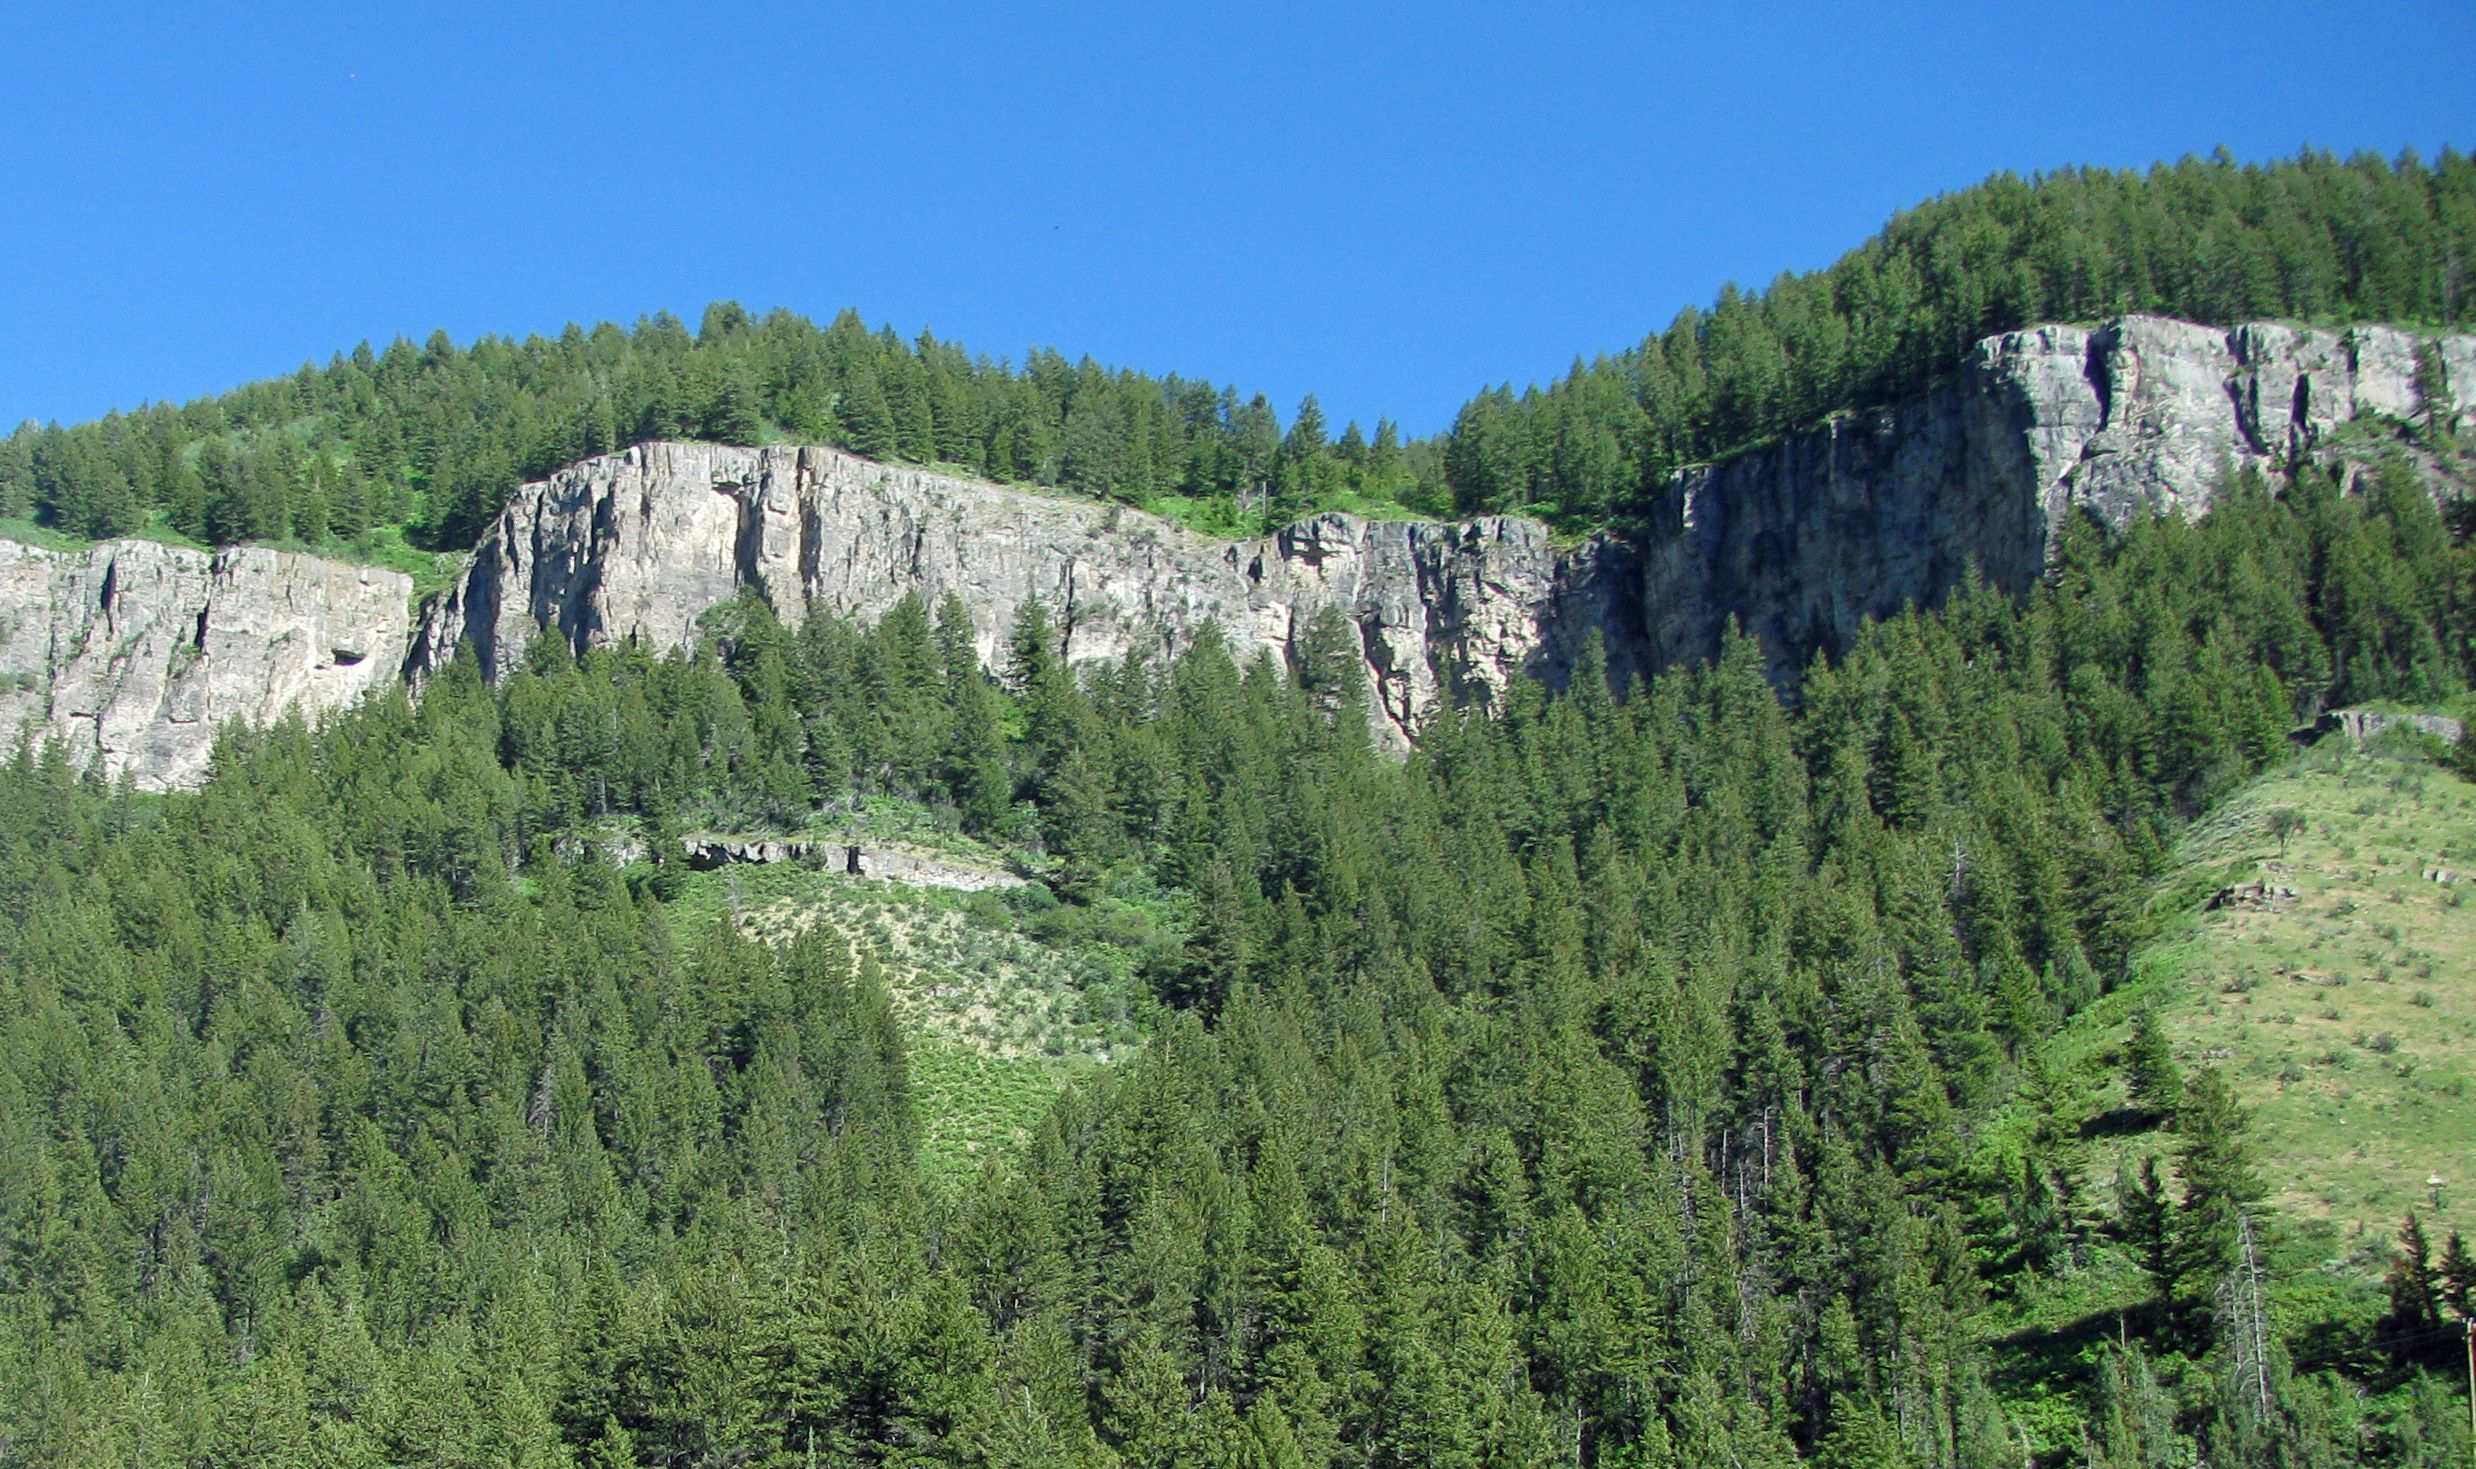 Logan Canyon, Lodgepole Limestone Formation makes up the major cliff